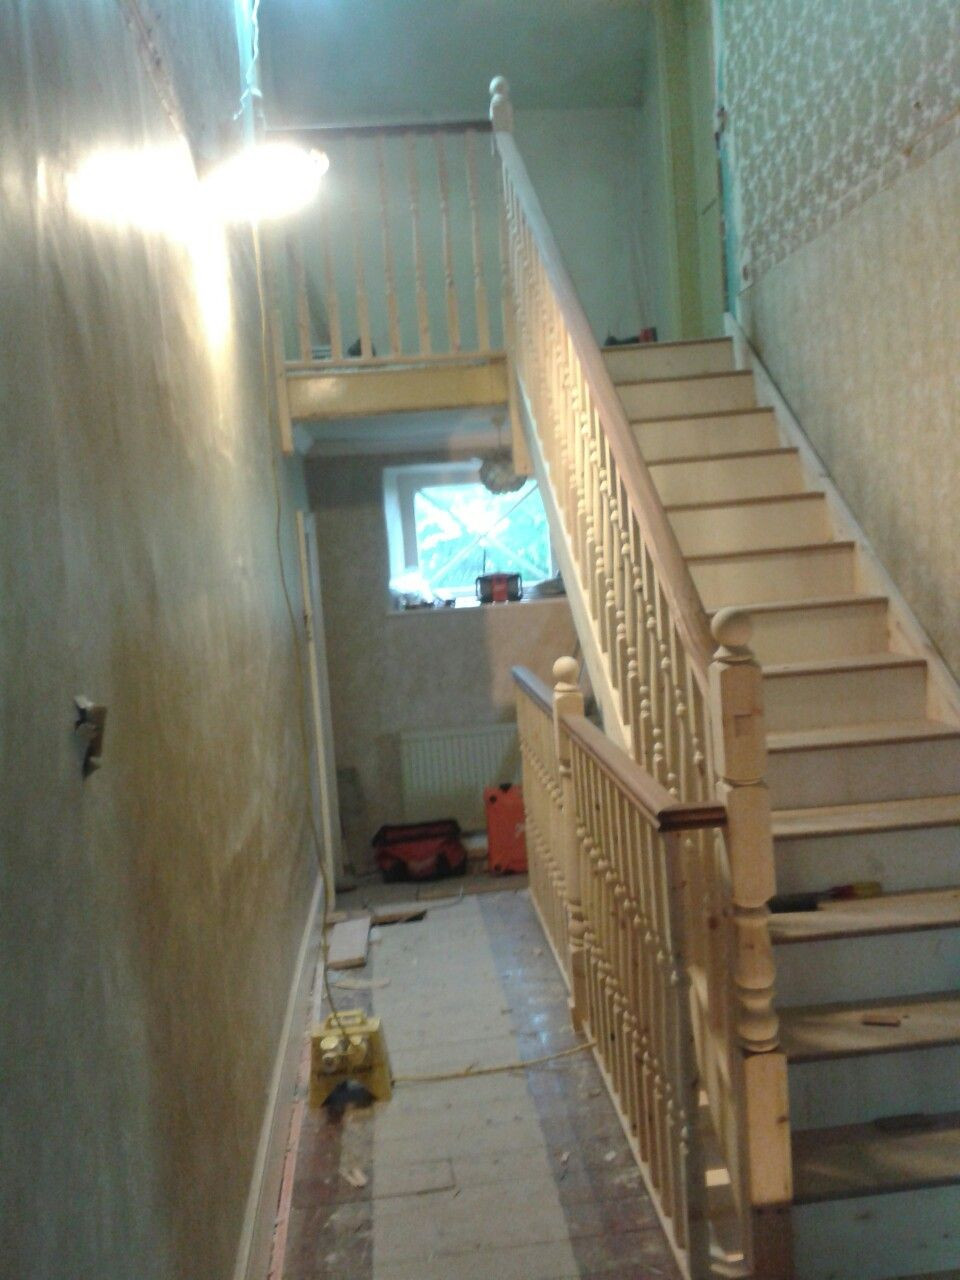 hardwood floor top of stairs of felkington new top staircase with bannisters felkington intended for felkington new top staircase with bannisters bannister staircases farmhouse stairs stairways